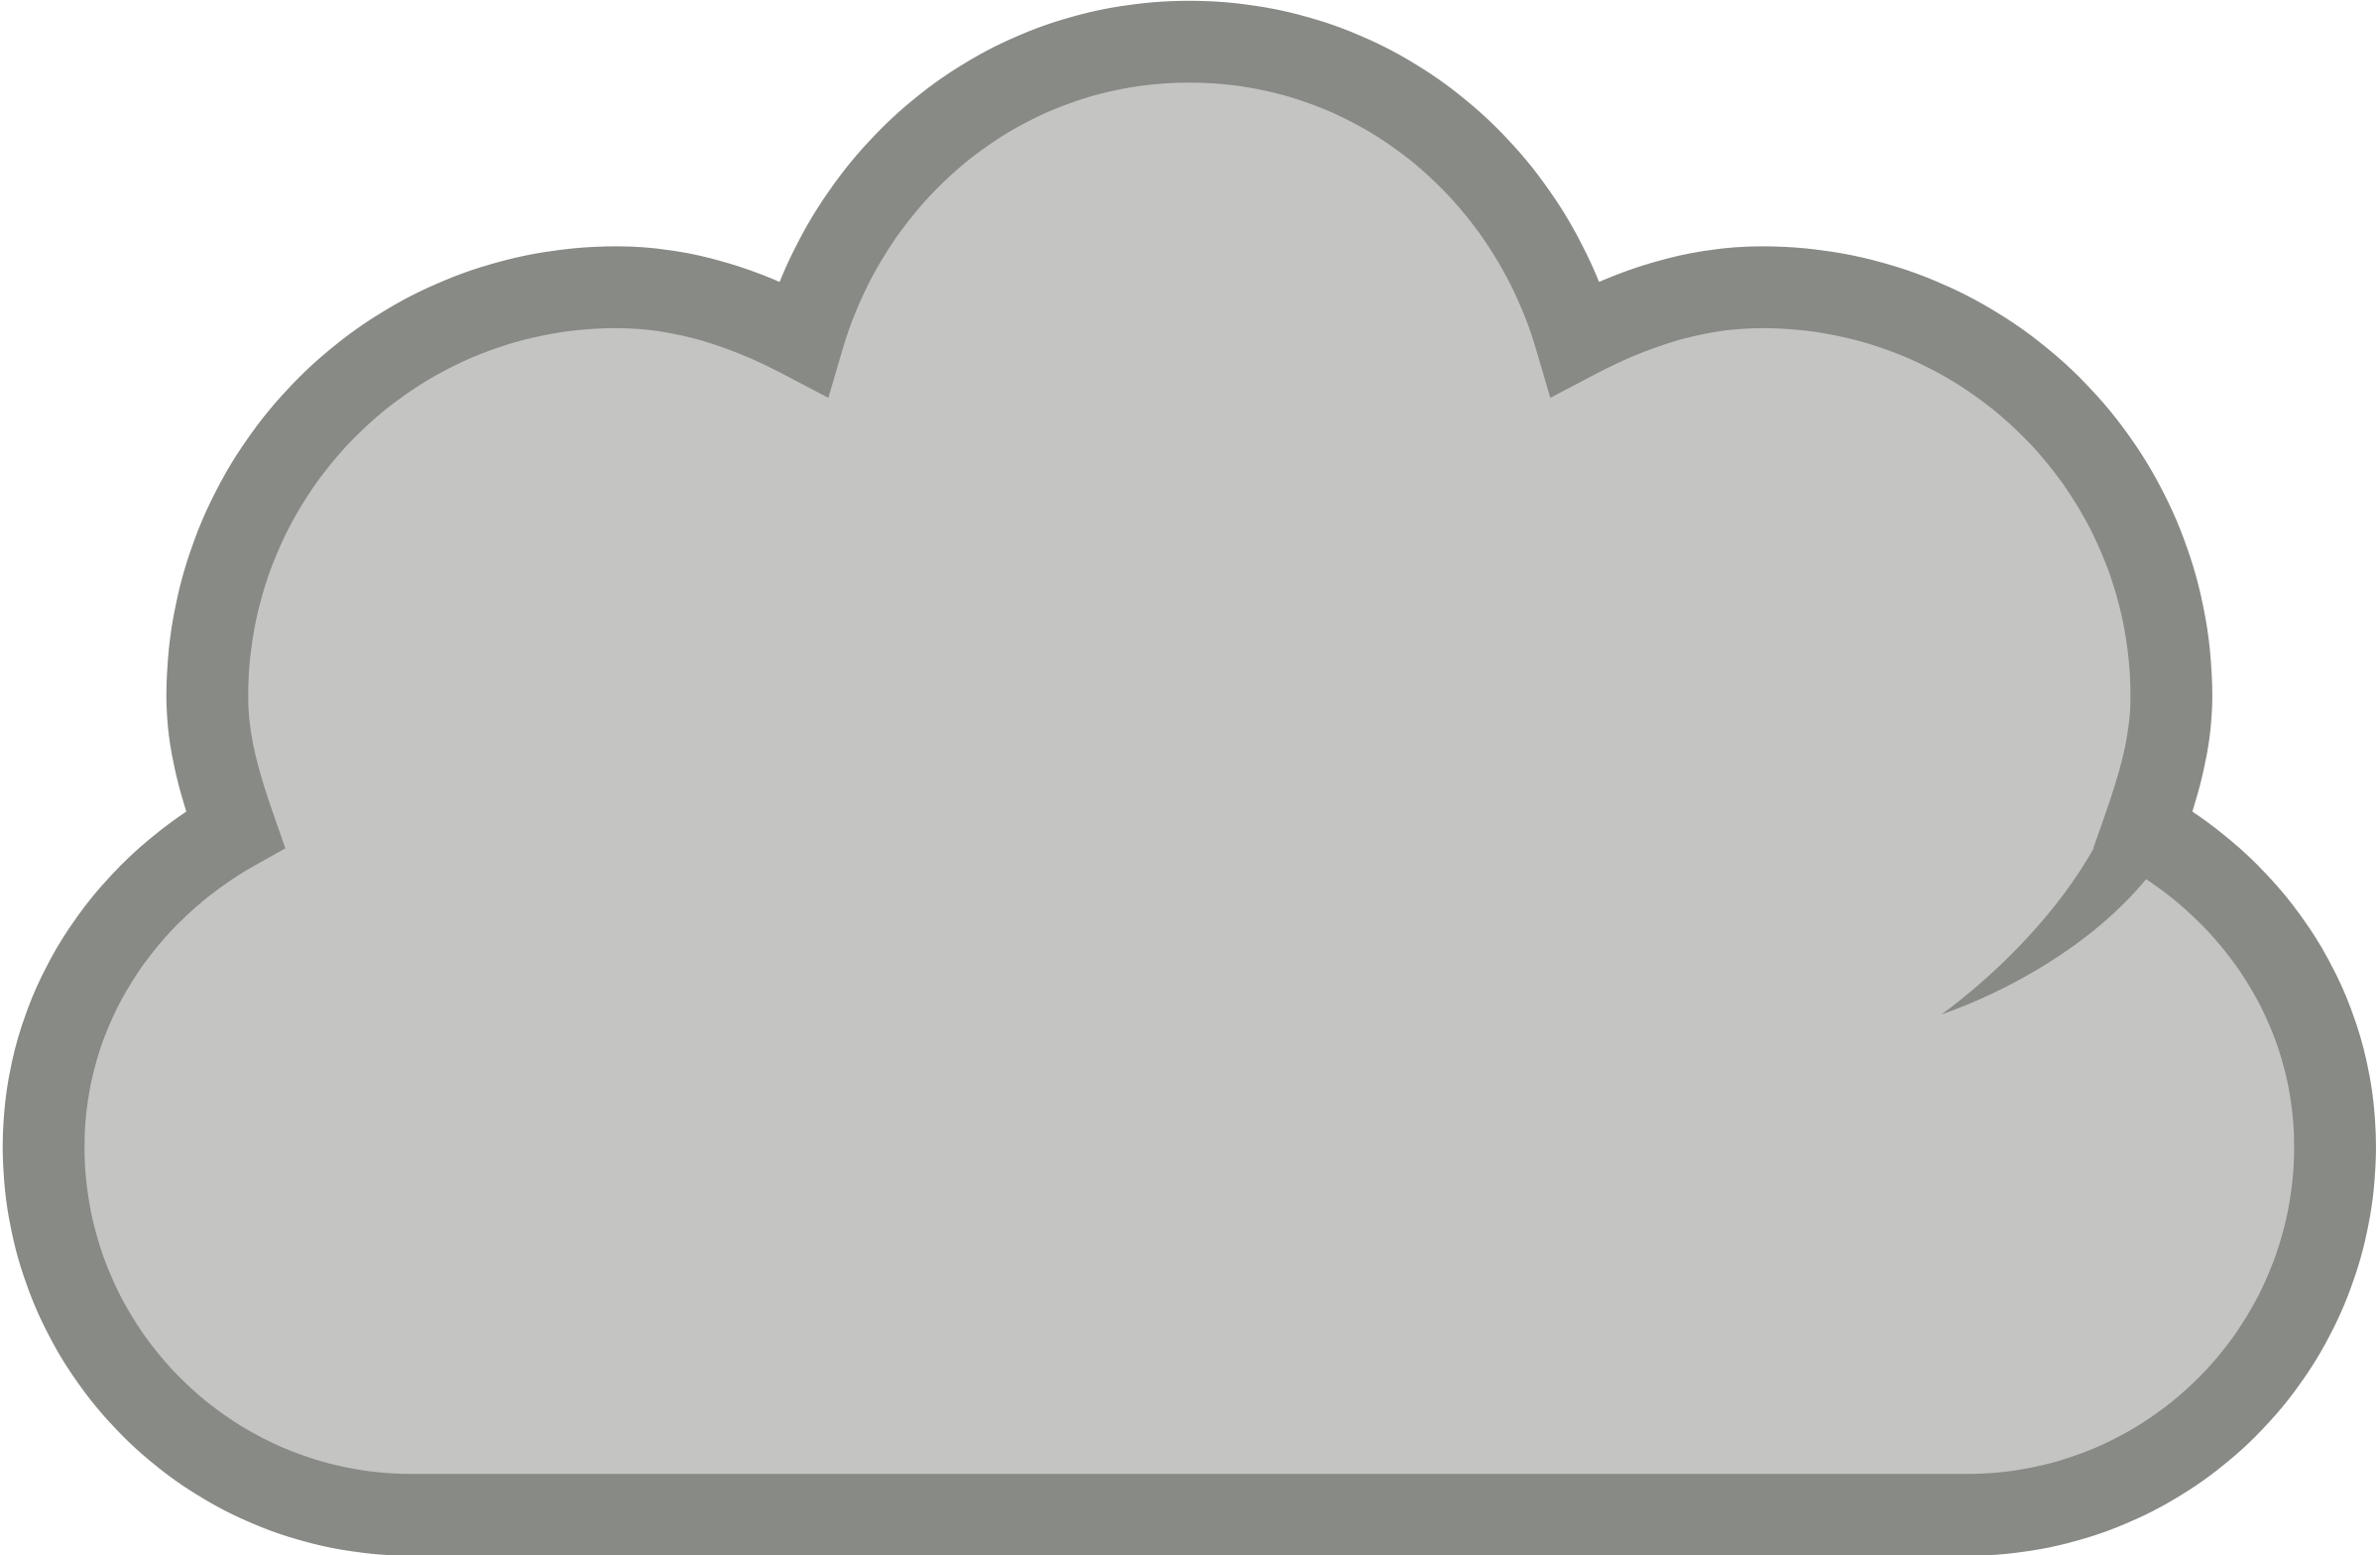 image royalty free Gray Cloudy Clipart